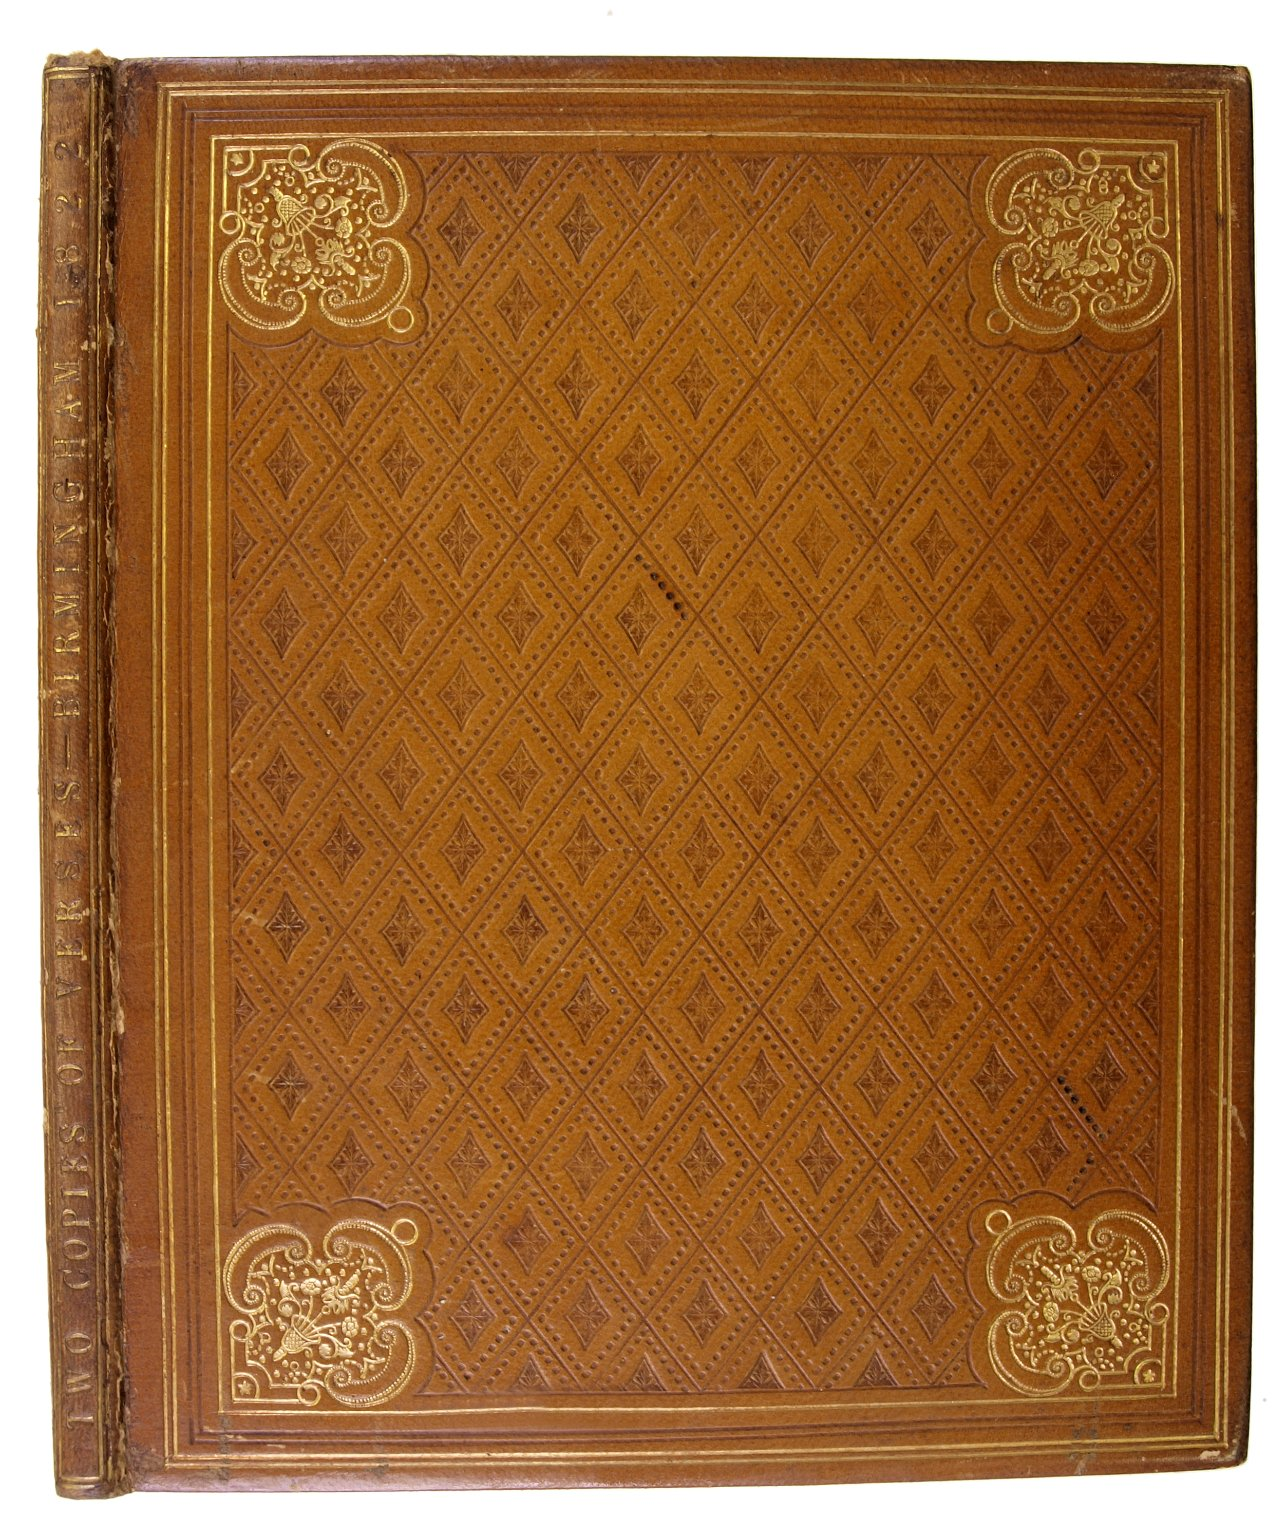 Front cover and spine, DA396 A22 T9.